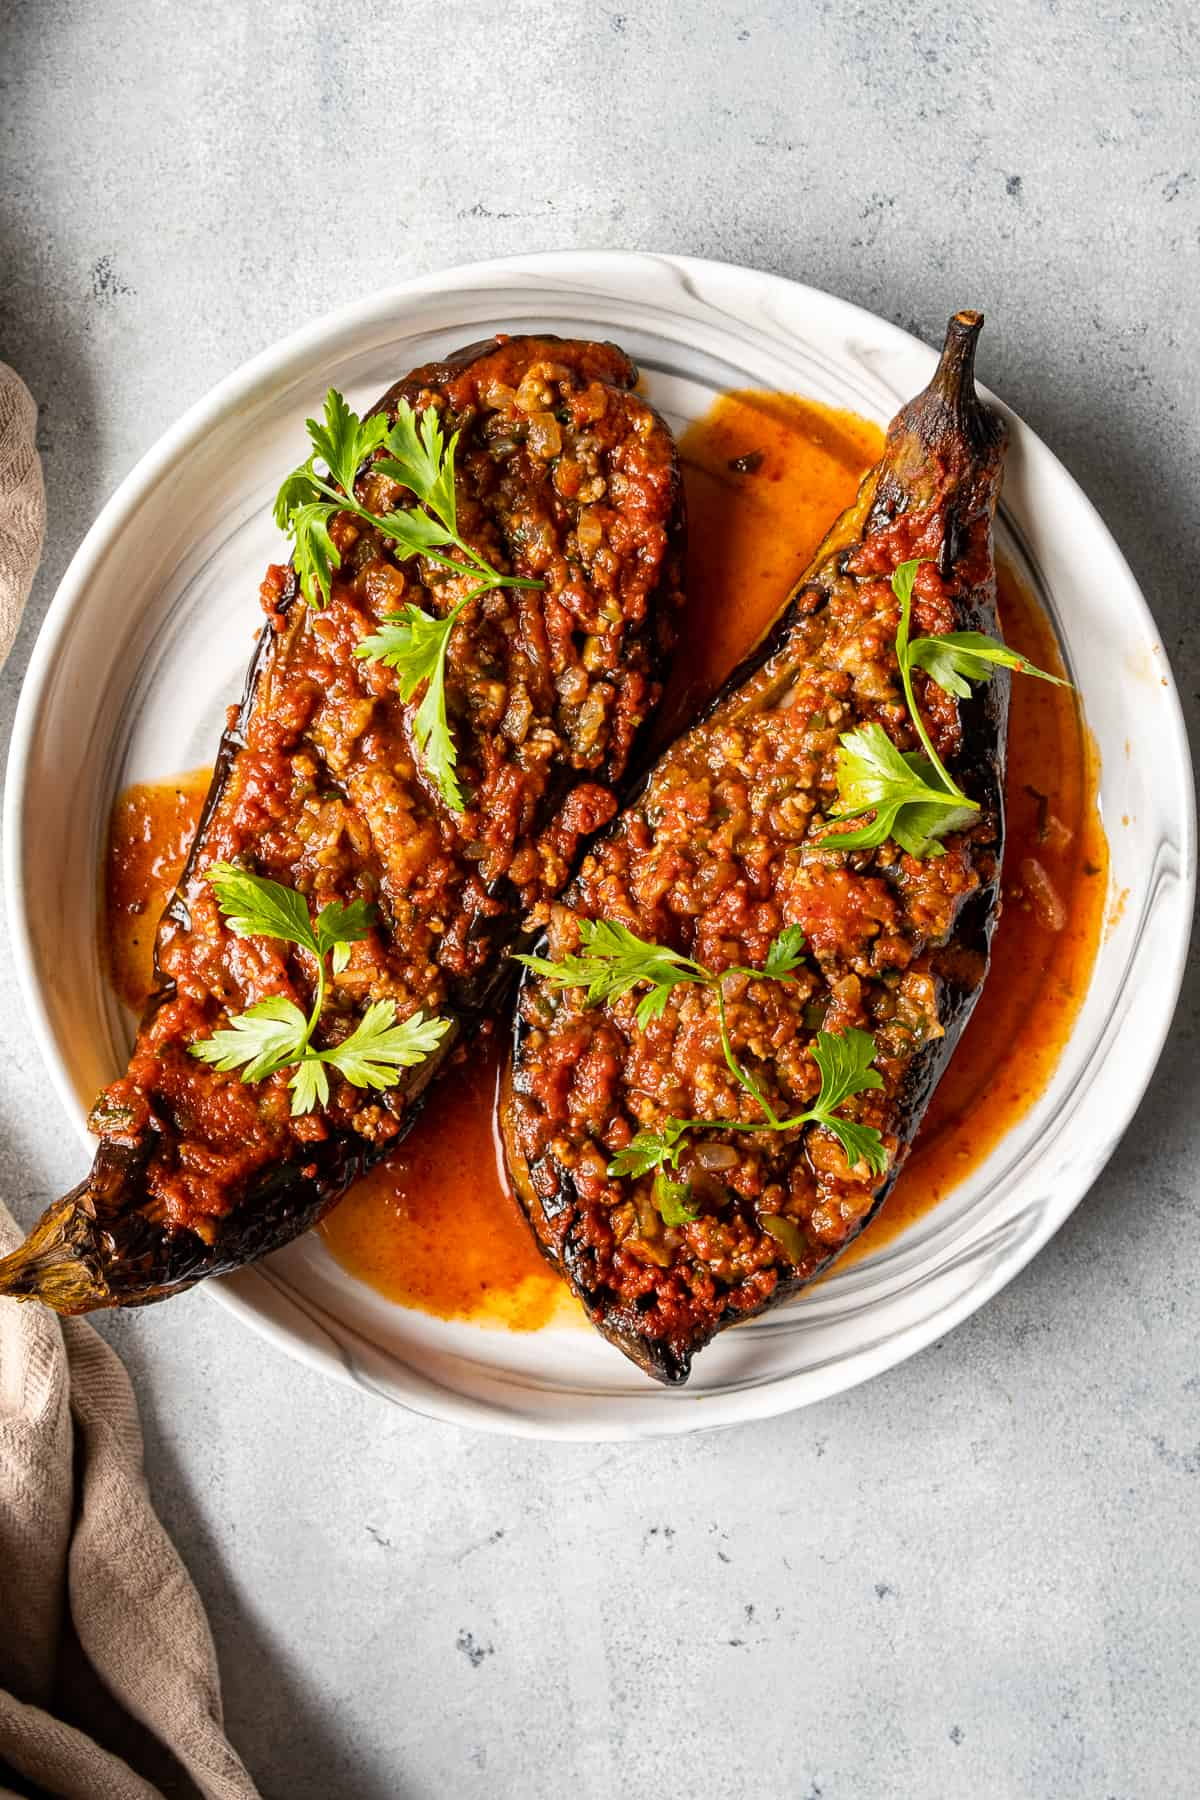 Turkish ground beef stuffed eggplants with tomato sauce garnished with parsley on a white plate.